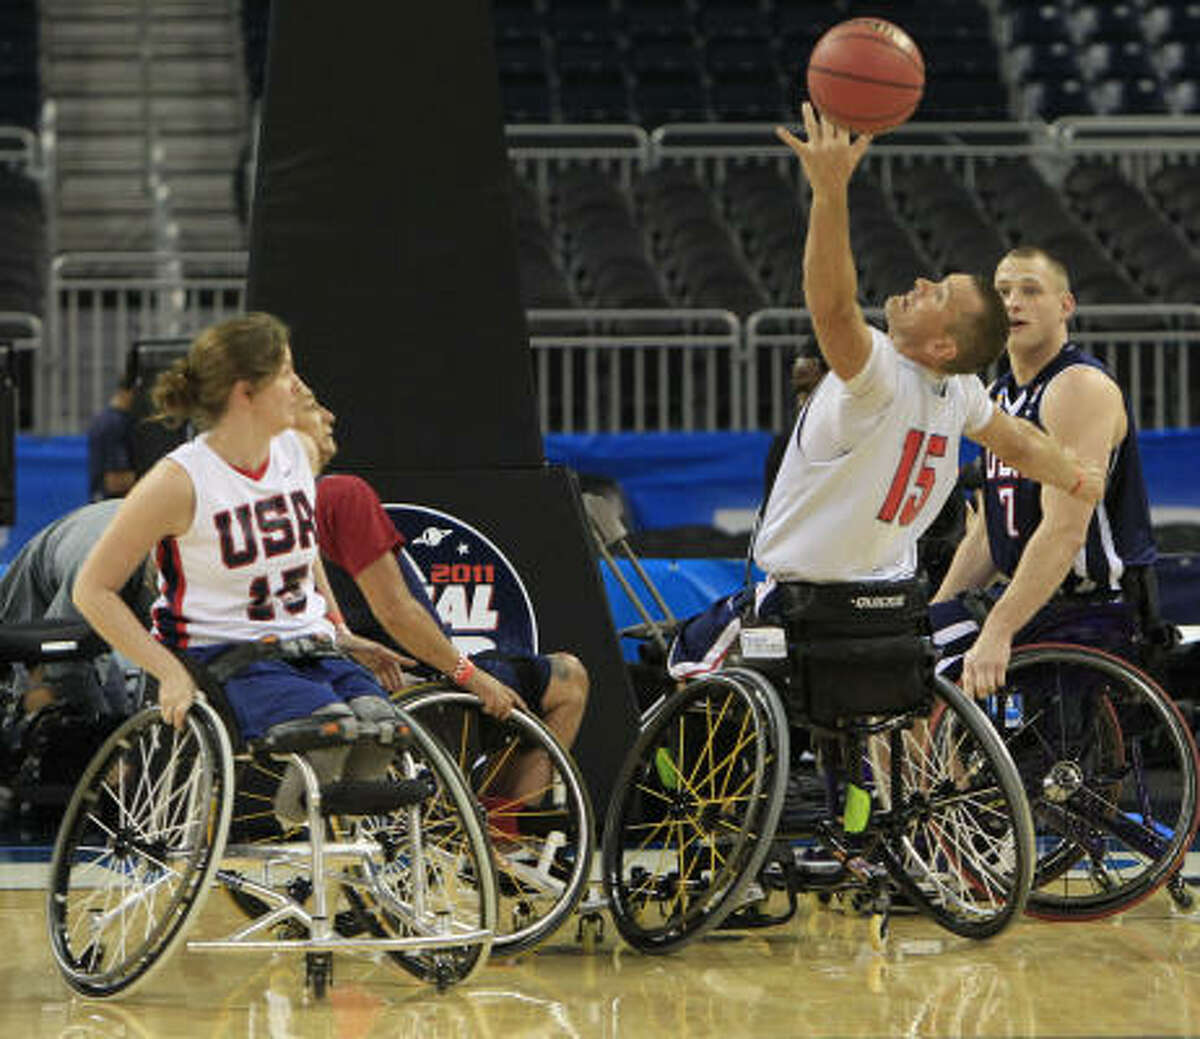 Jeff Glassbrenner (15), of Little Rock, Ark., reaches up to grab a rebound with teammate Carlee Hoffman, left, of Chicago.